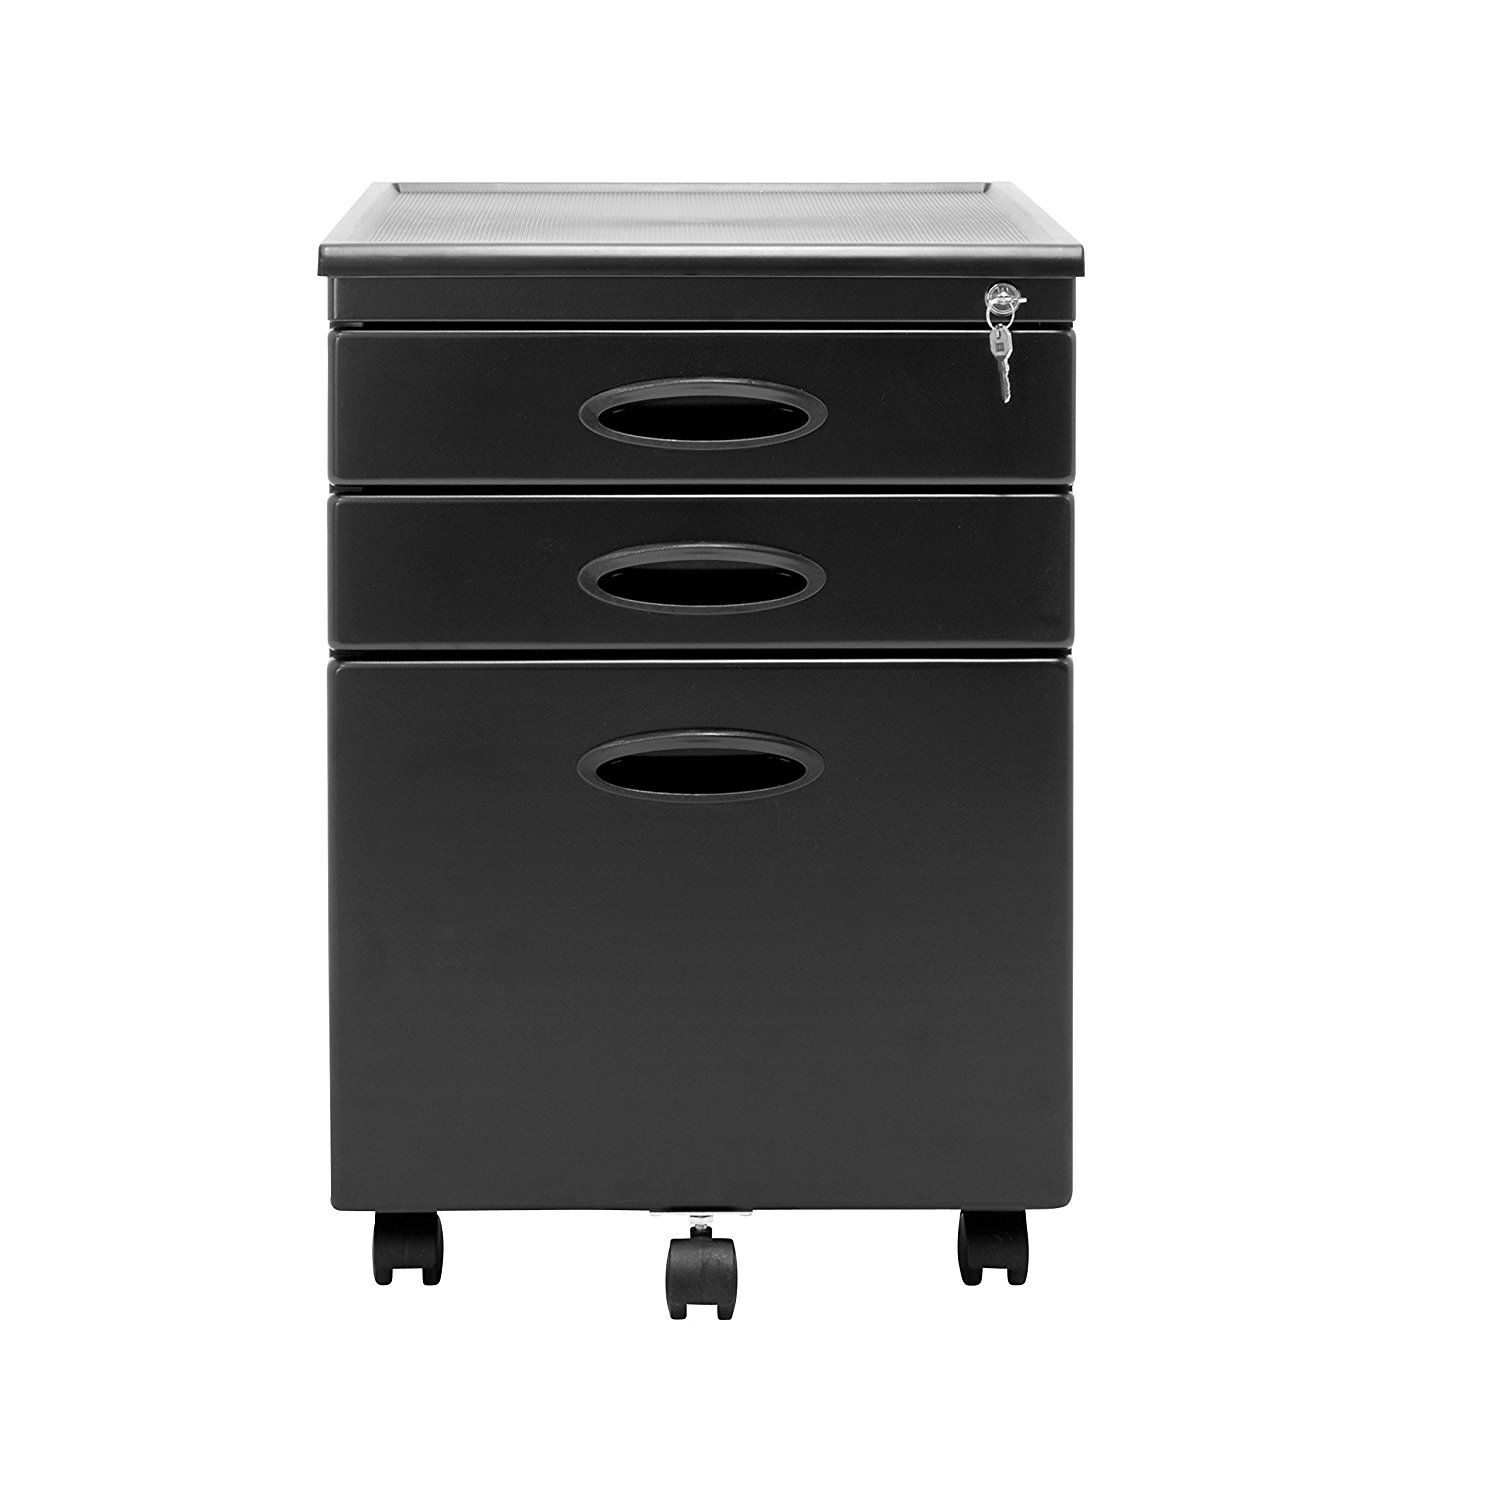 office designs file cabinet. Amazon.com: Calico Designs File Cabinet In Black 51100: Arts, Crafts \u0026 Sewing Office